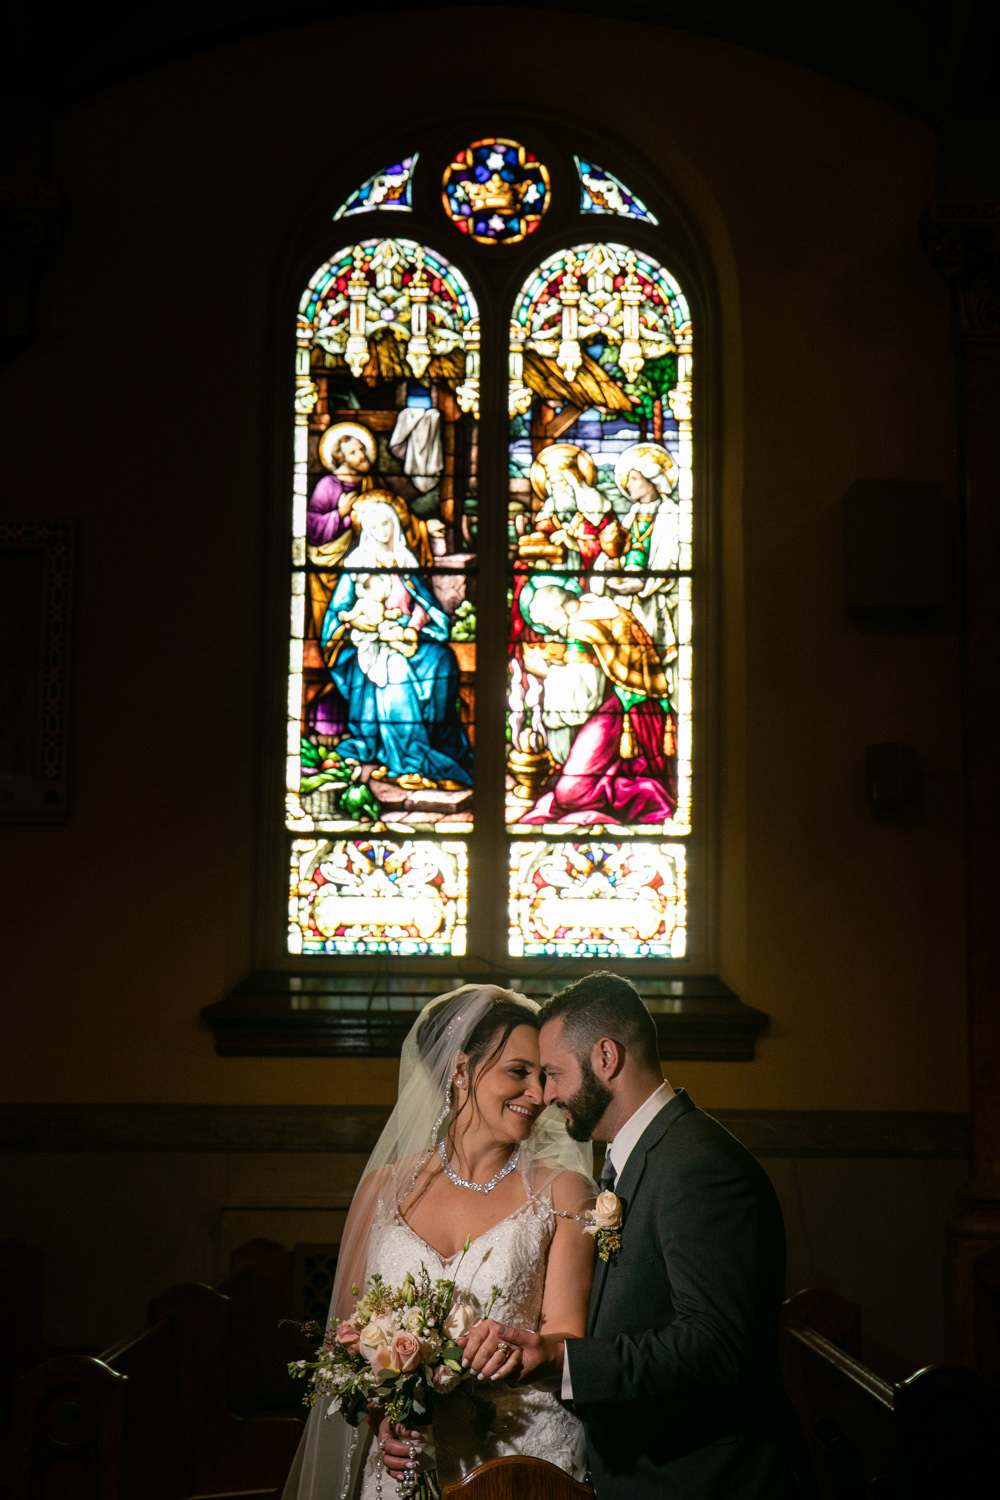 bride and groom in front of the stained glass Wedding at Holy Family Parish at St. Joseph's Church